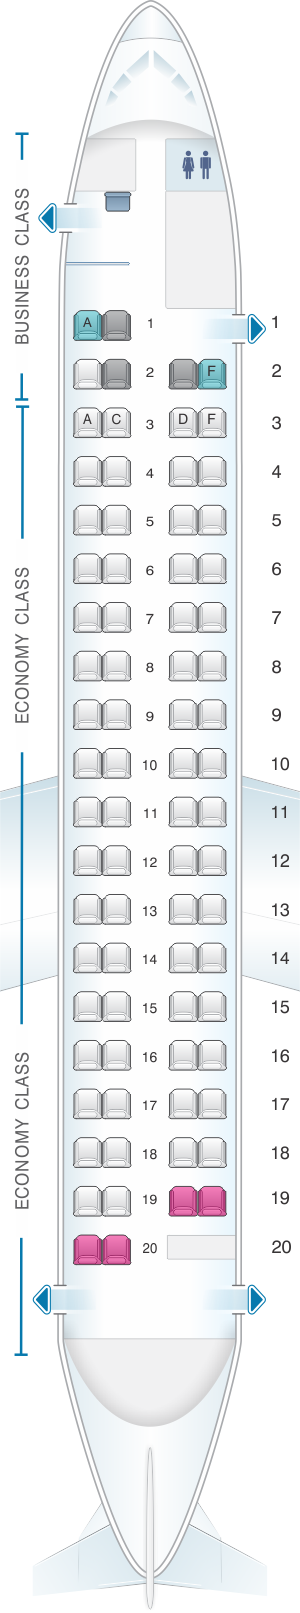 Seat map for Eurowings Bombardier Q400